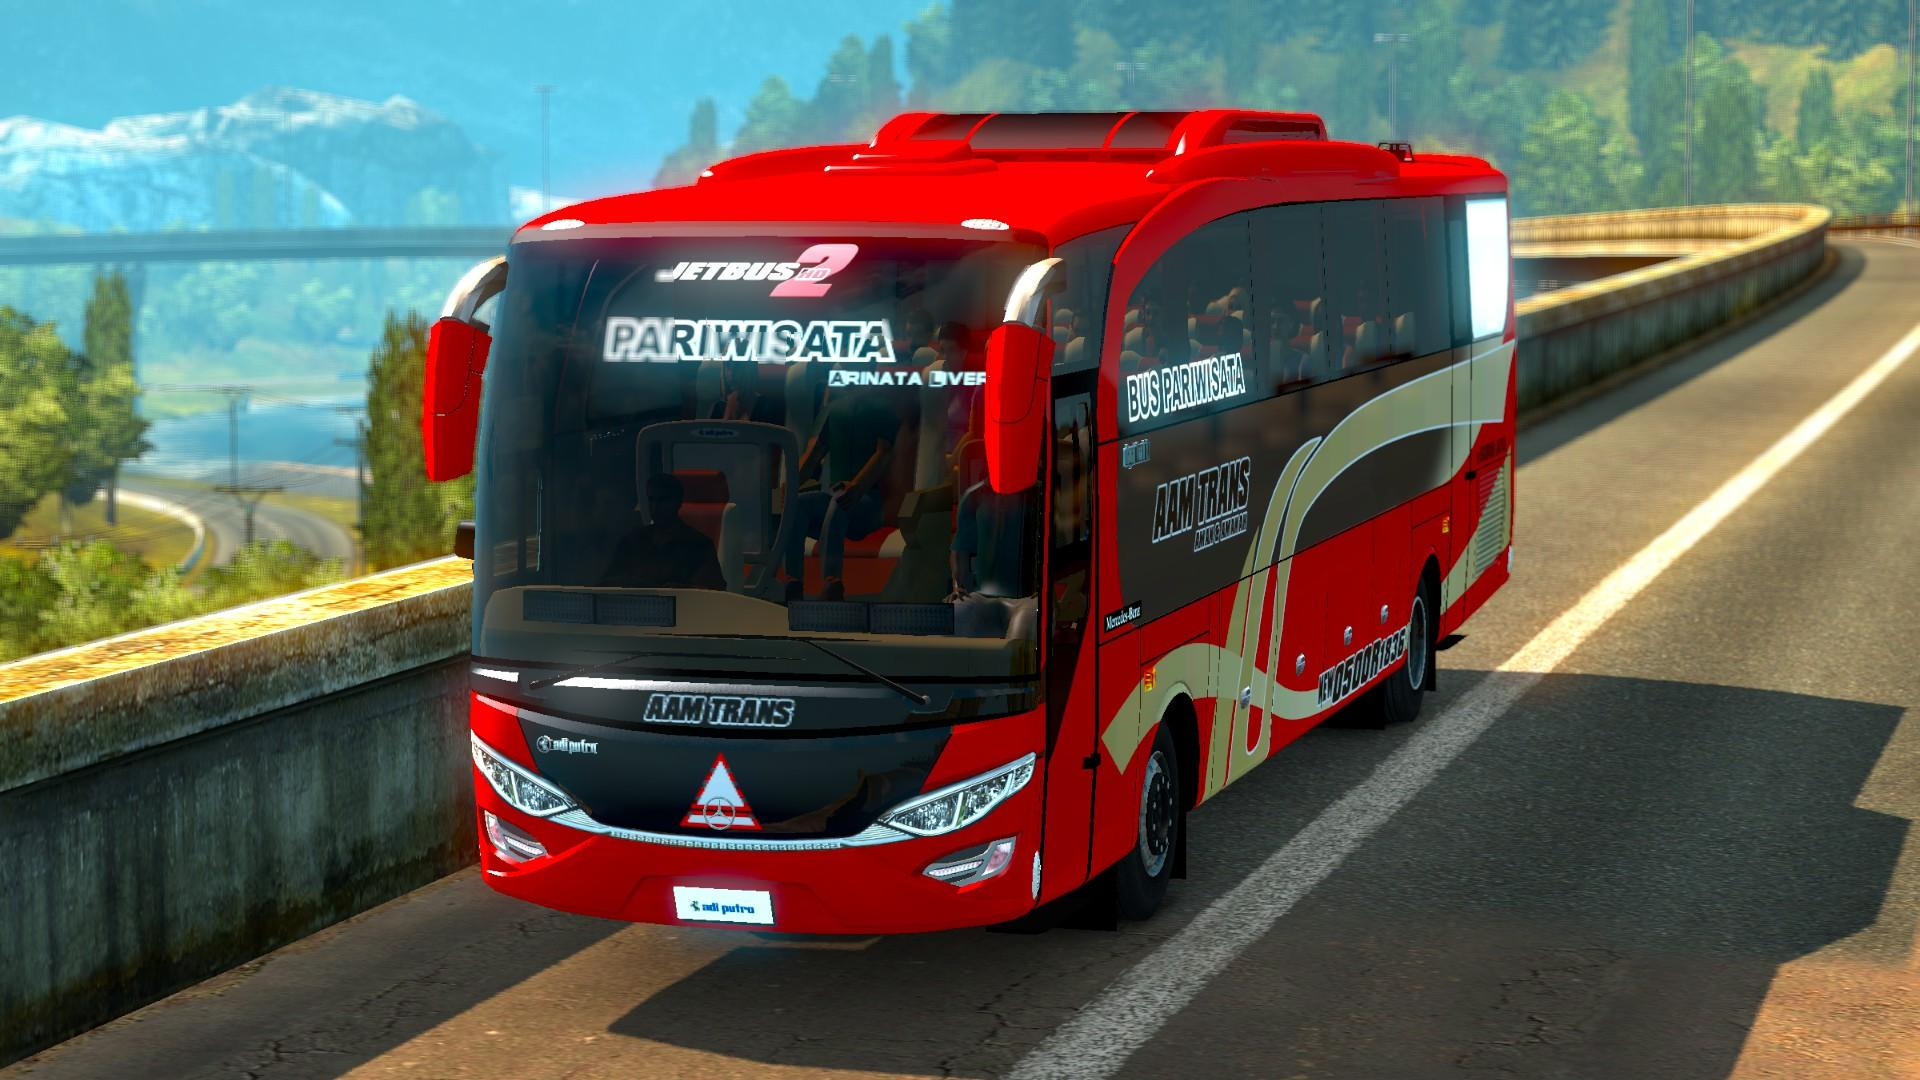 mercedes-benz-jetbus-2-release-1-17-x-1-18-beta_1